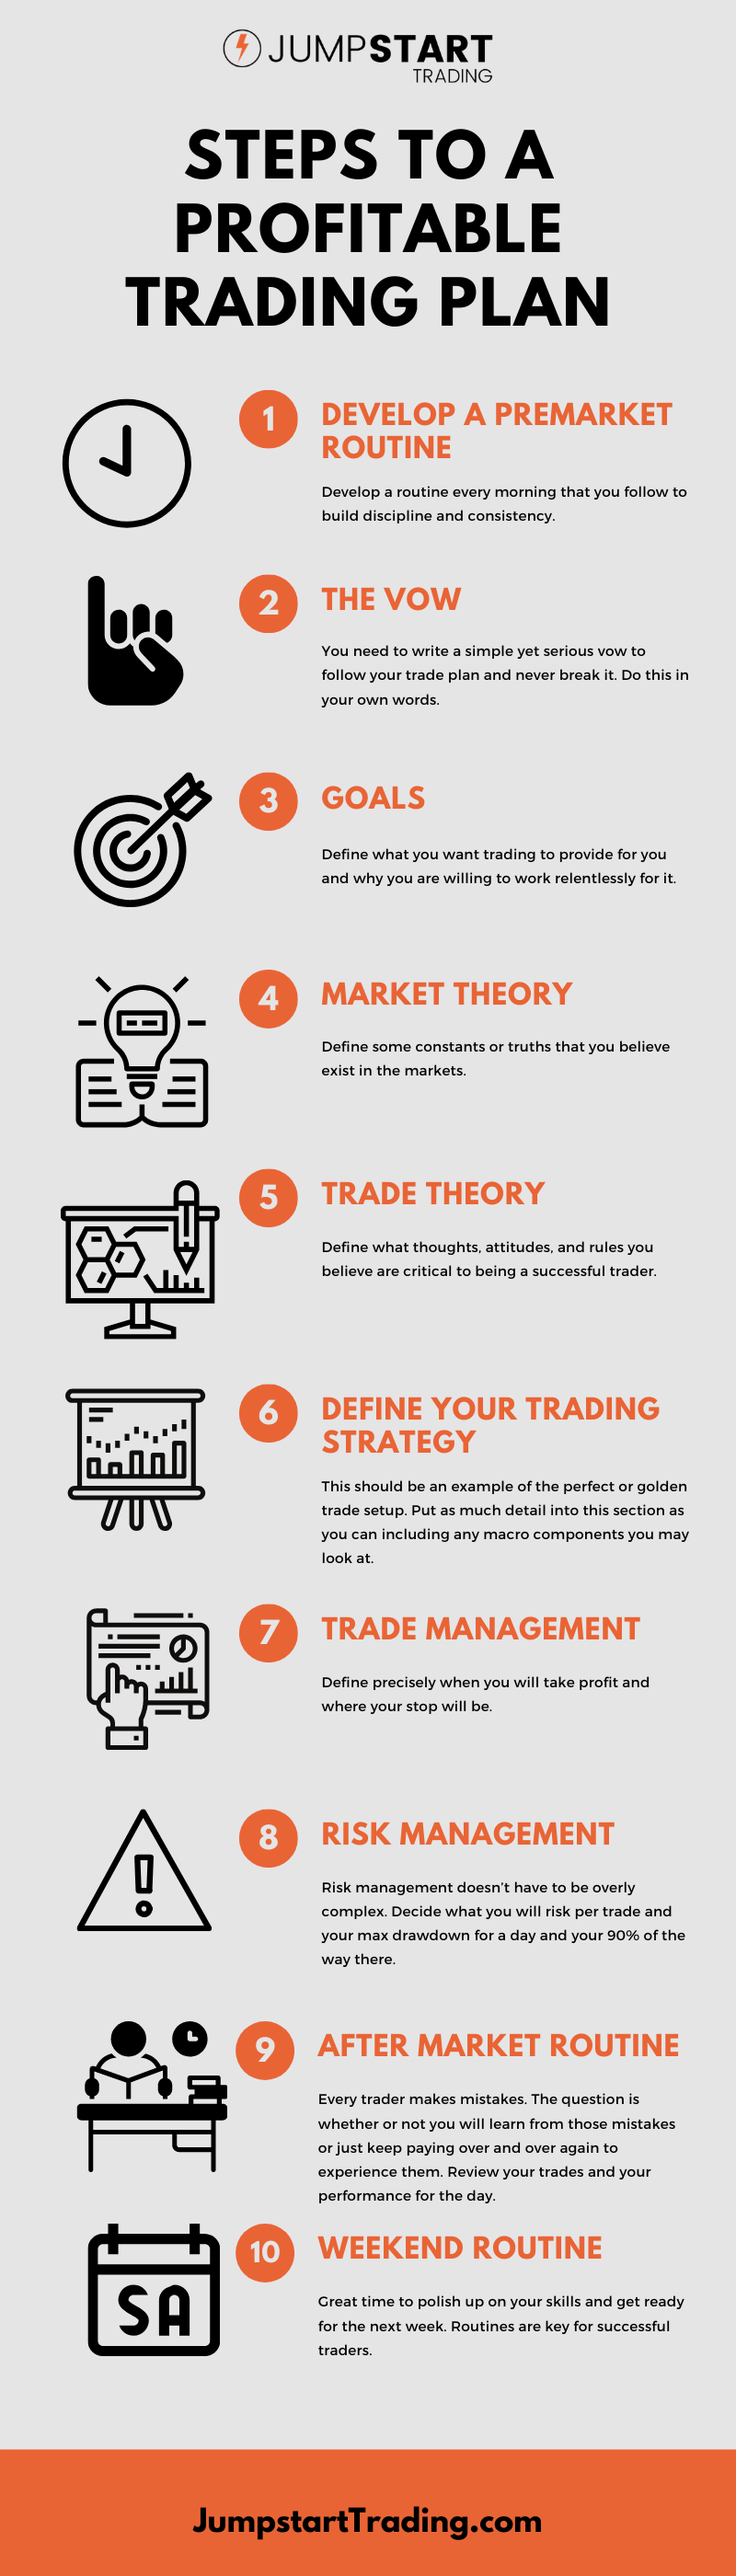 Steps to a Profitable Trading Plan